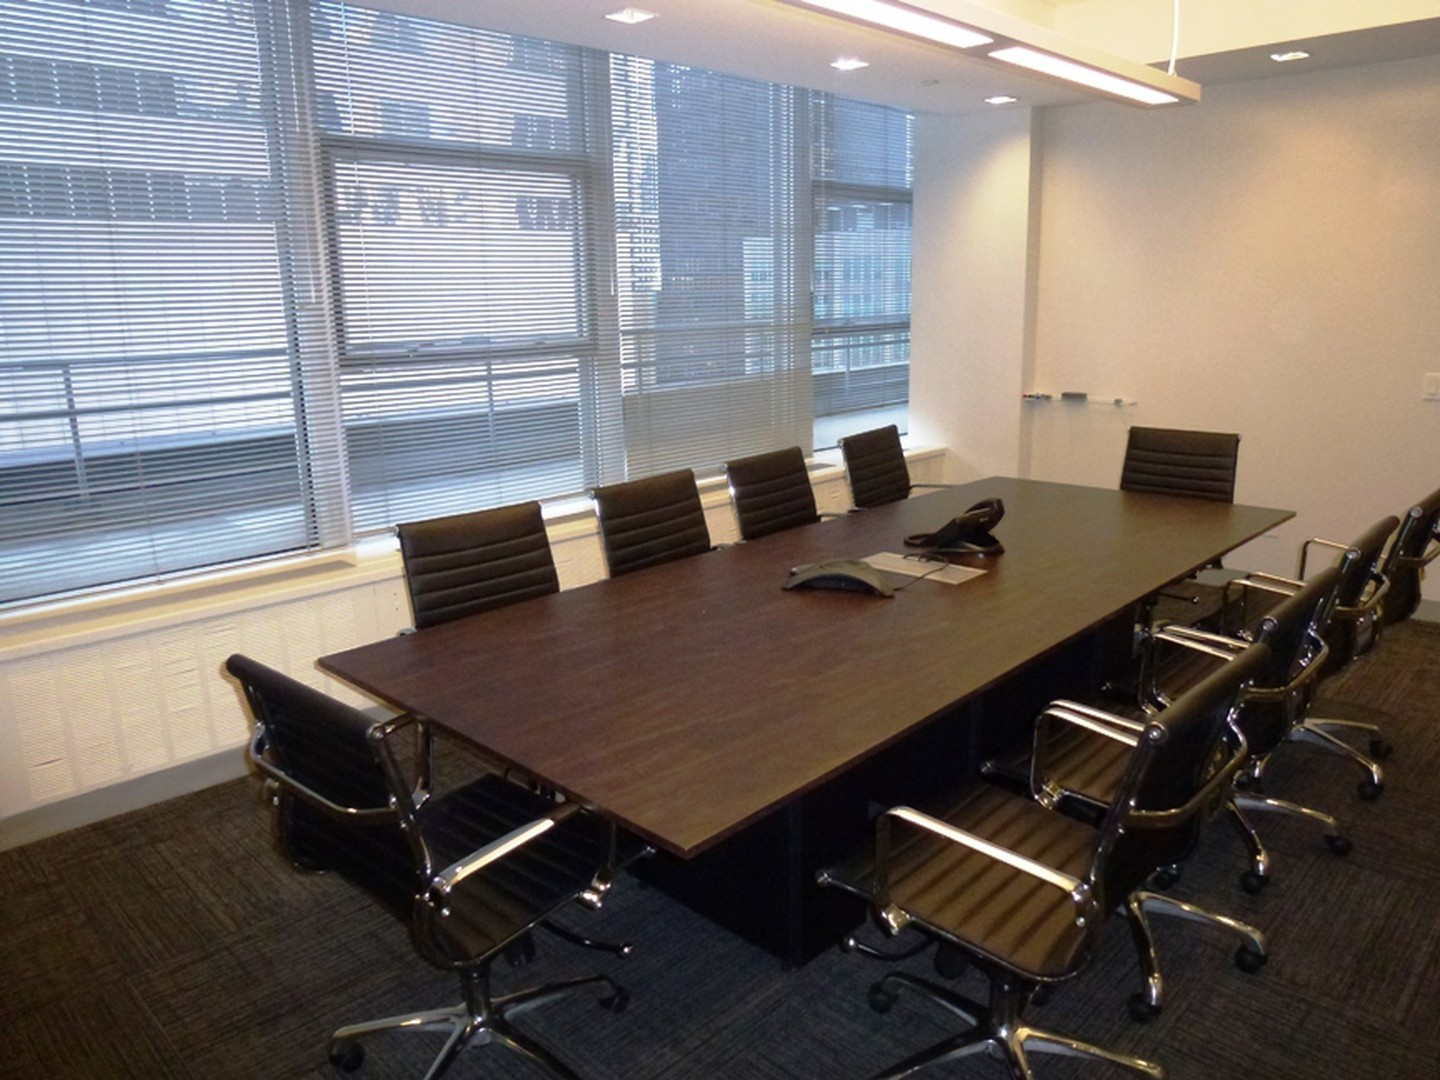 NYC training rooms Salle de réunion 10 Person Window Board Room at 54th and Lexington Ave image 2